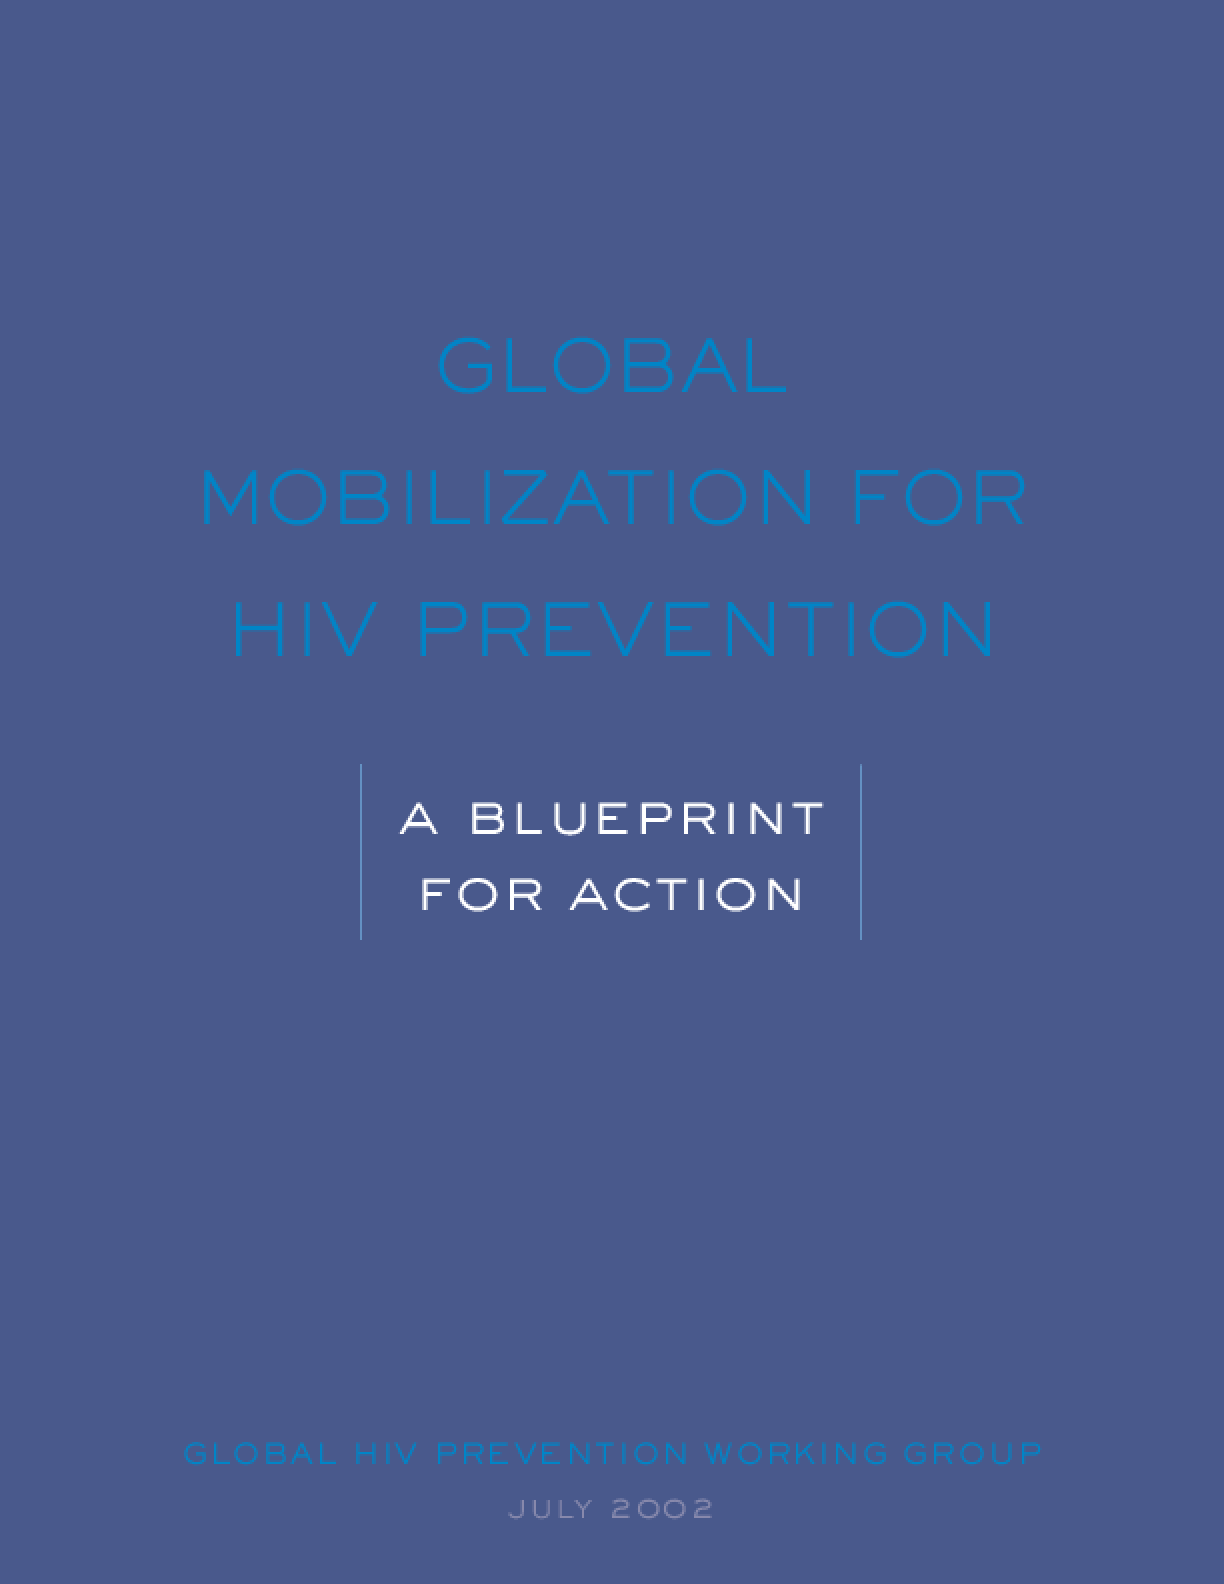 Global Mobilization for HIV Prevention: A Blueprint for Action